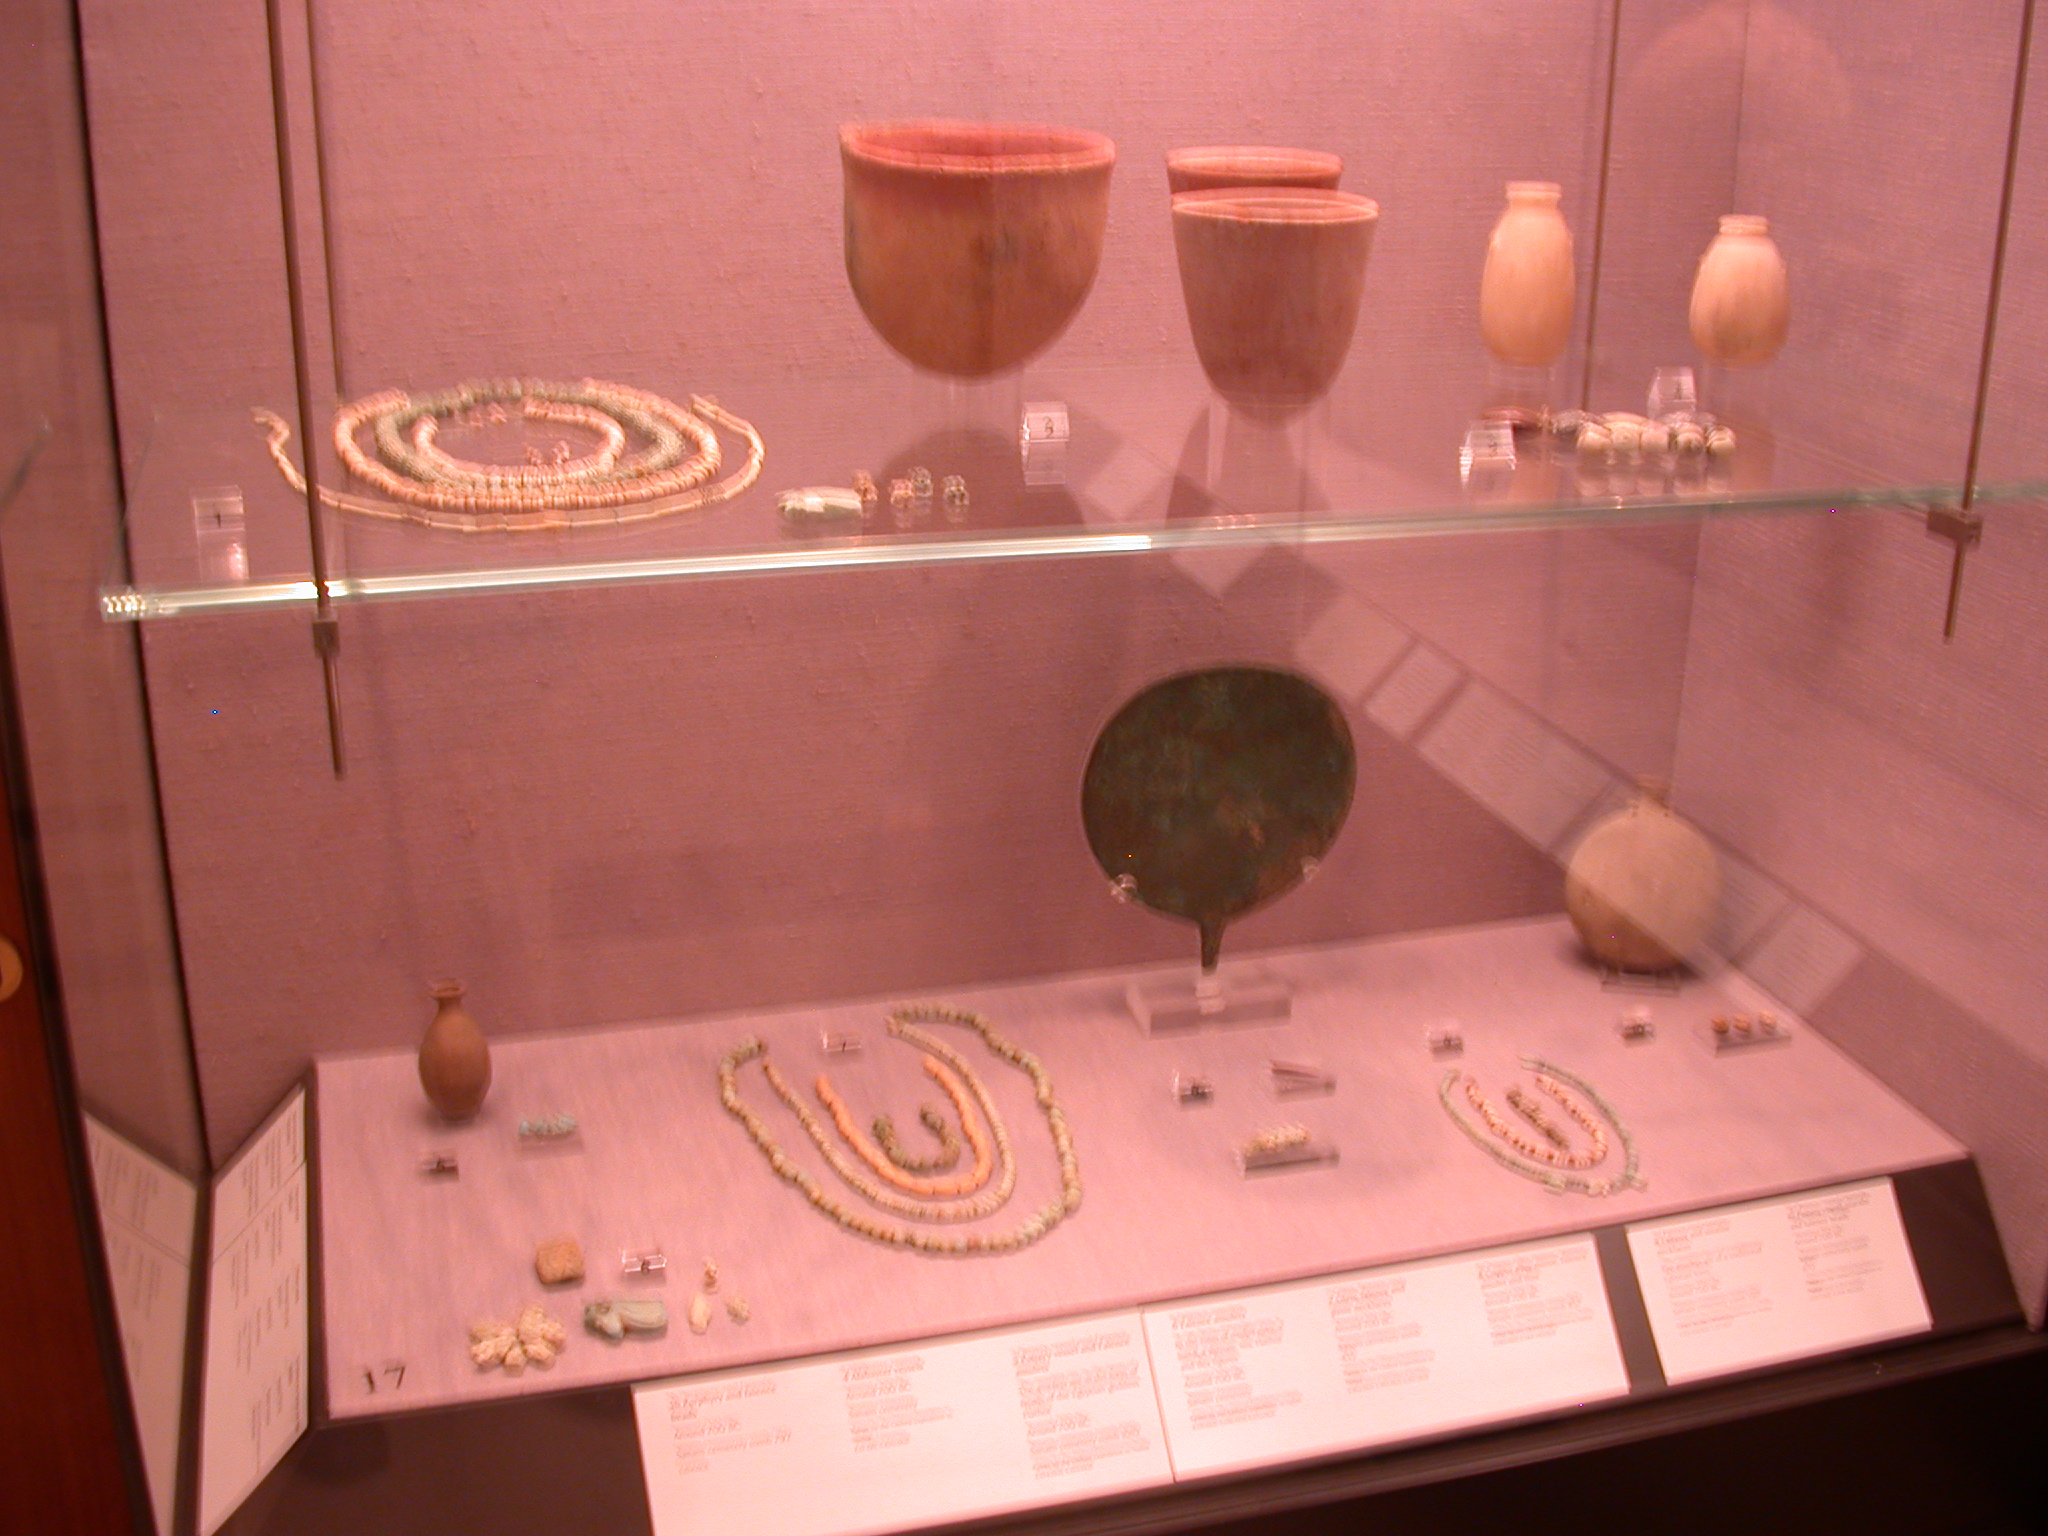 Cemetery Objects, Napatan Period, 700-300 BCE, Sanam Abu Dom, in Fitzwilliam Museum, Cambridge, England